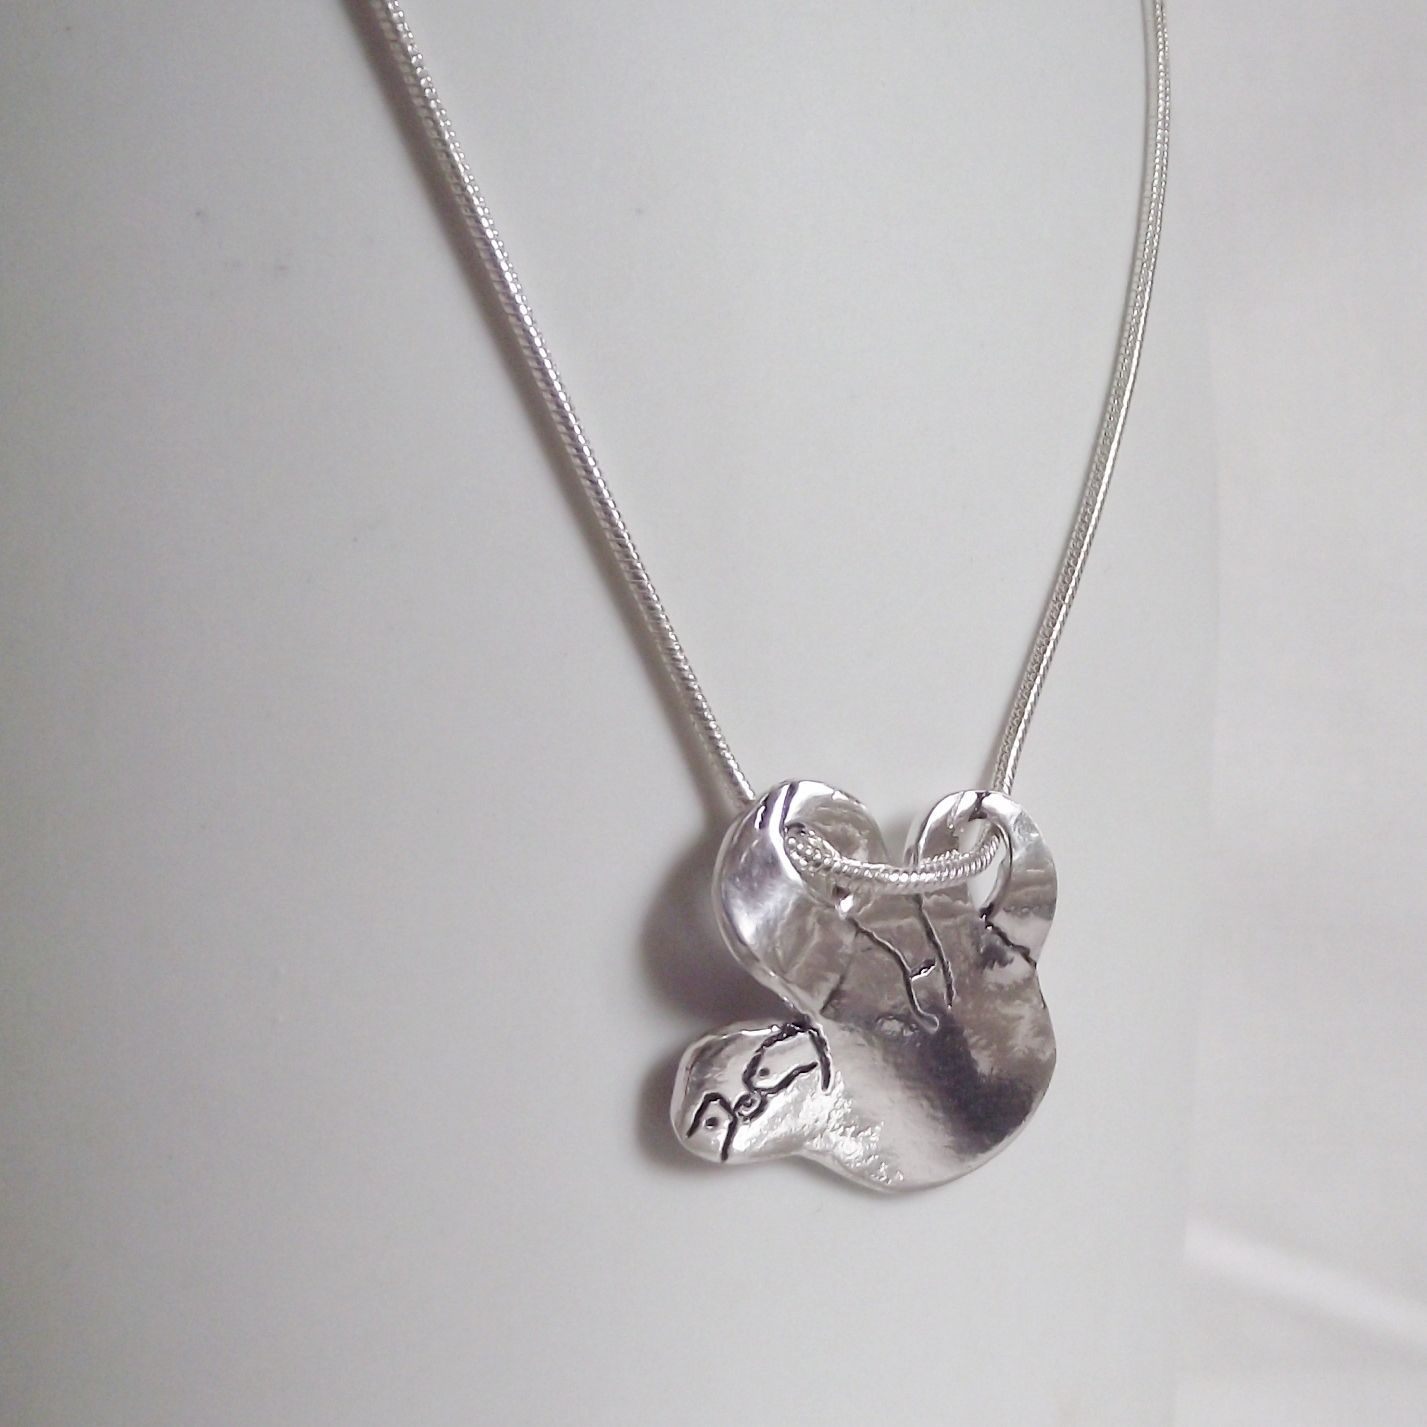 little sloth pendant gems products adorable silver sterling necklace